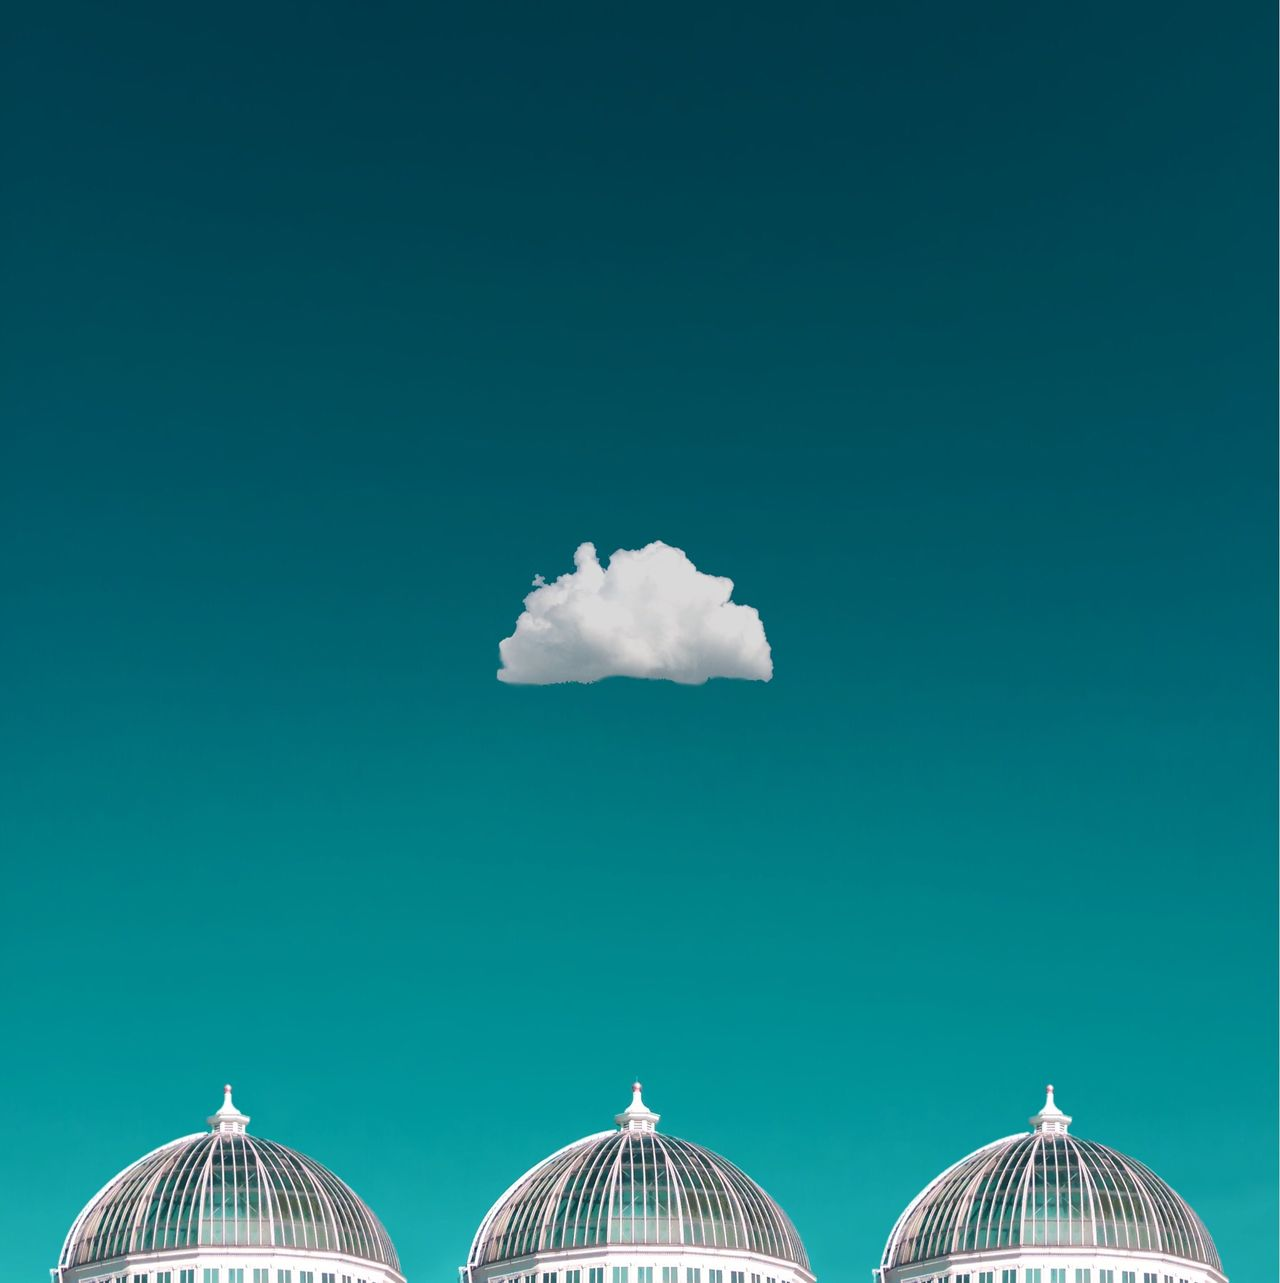 Single cloud over domes